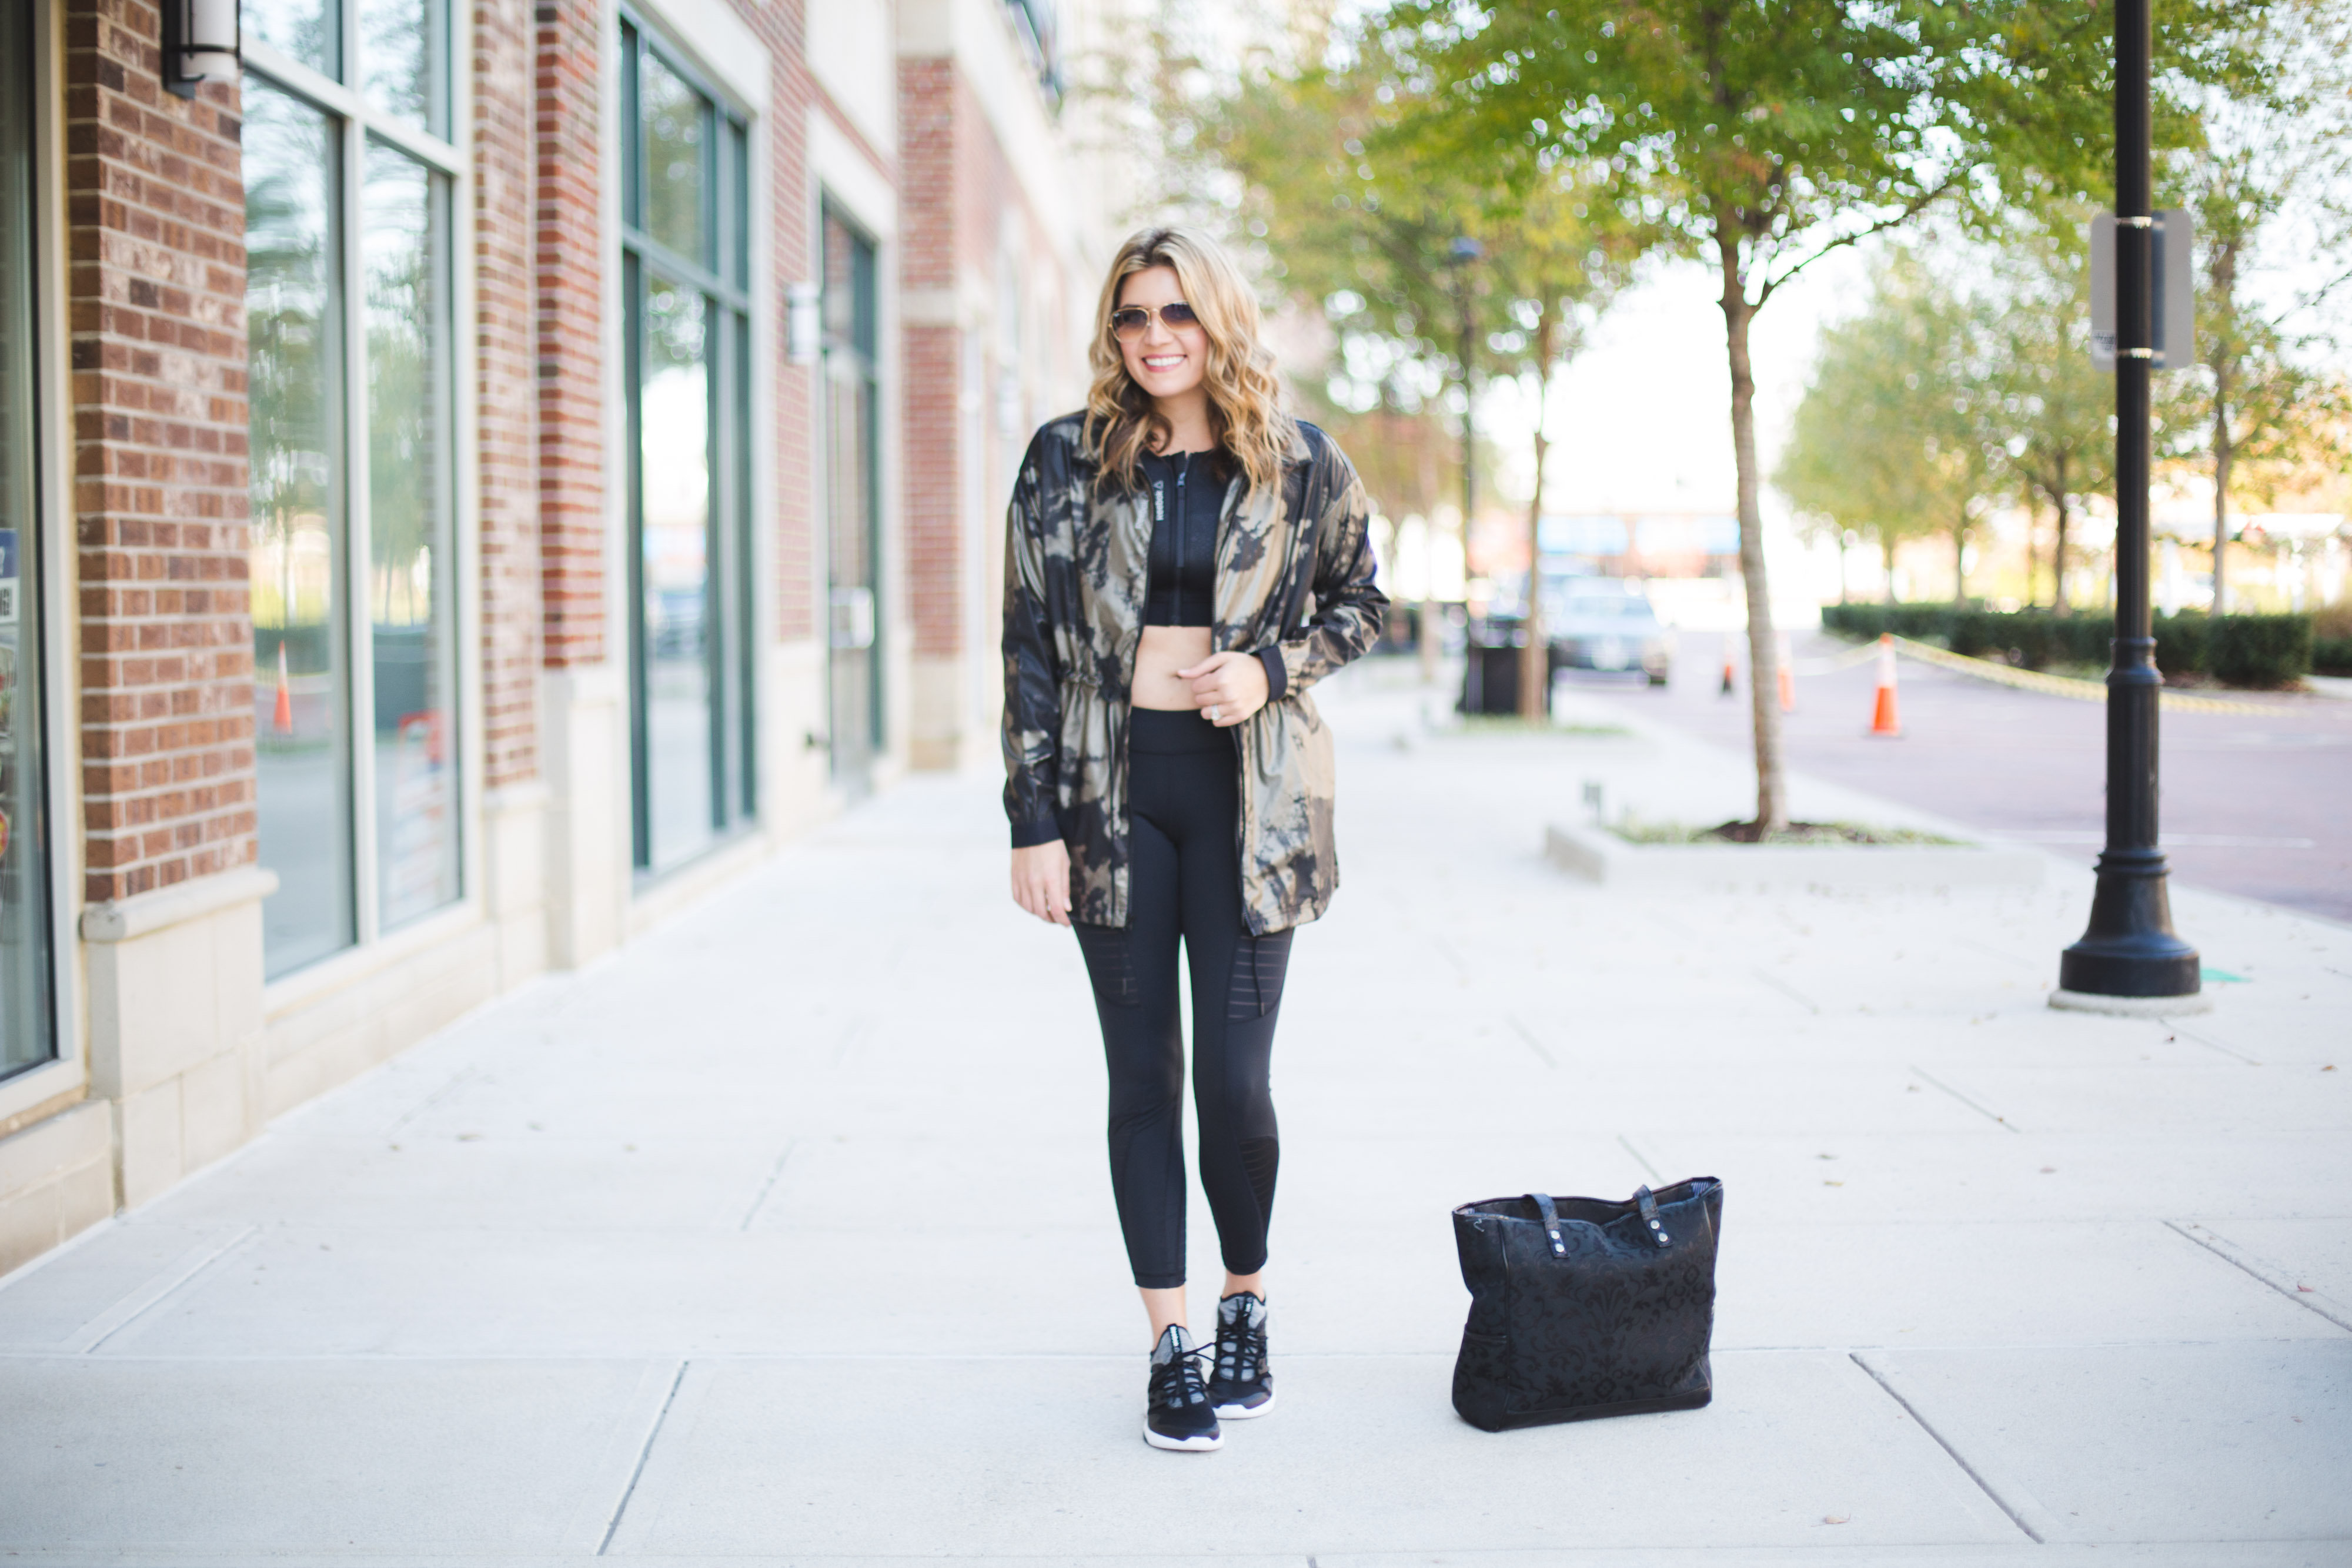 fashionable workout clothes - metallic drawstring jacket and mesh leggings | www.bylaurenm.com